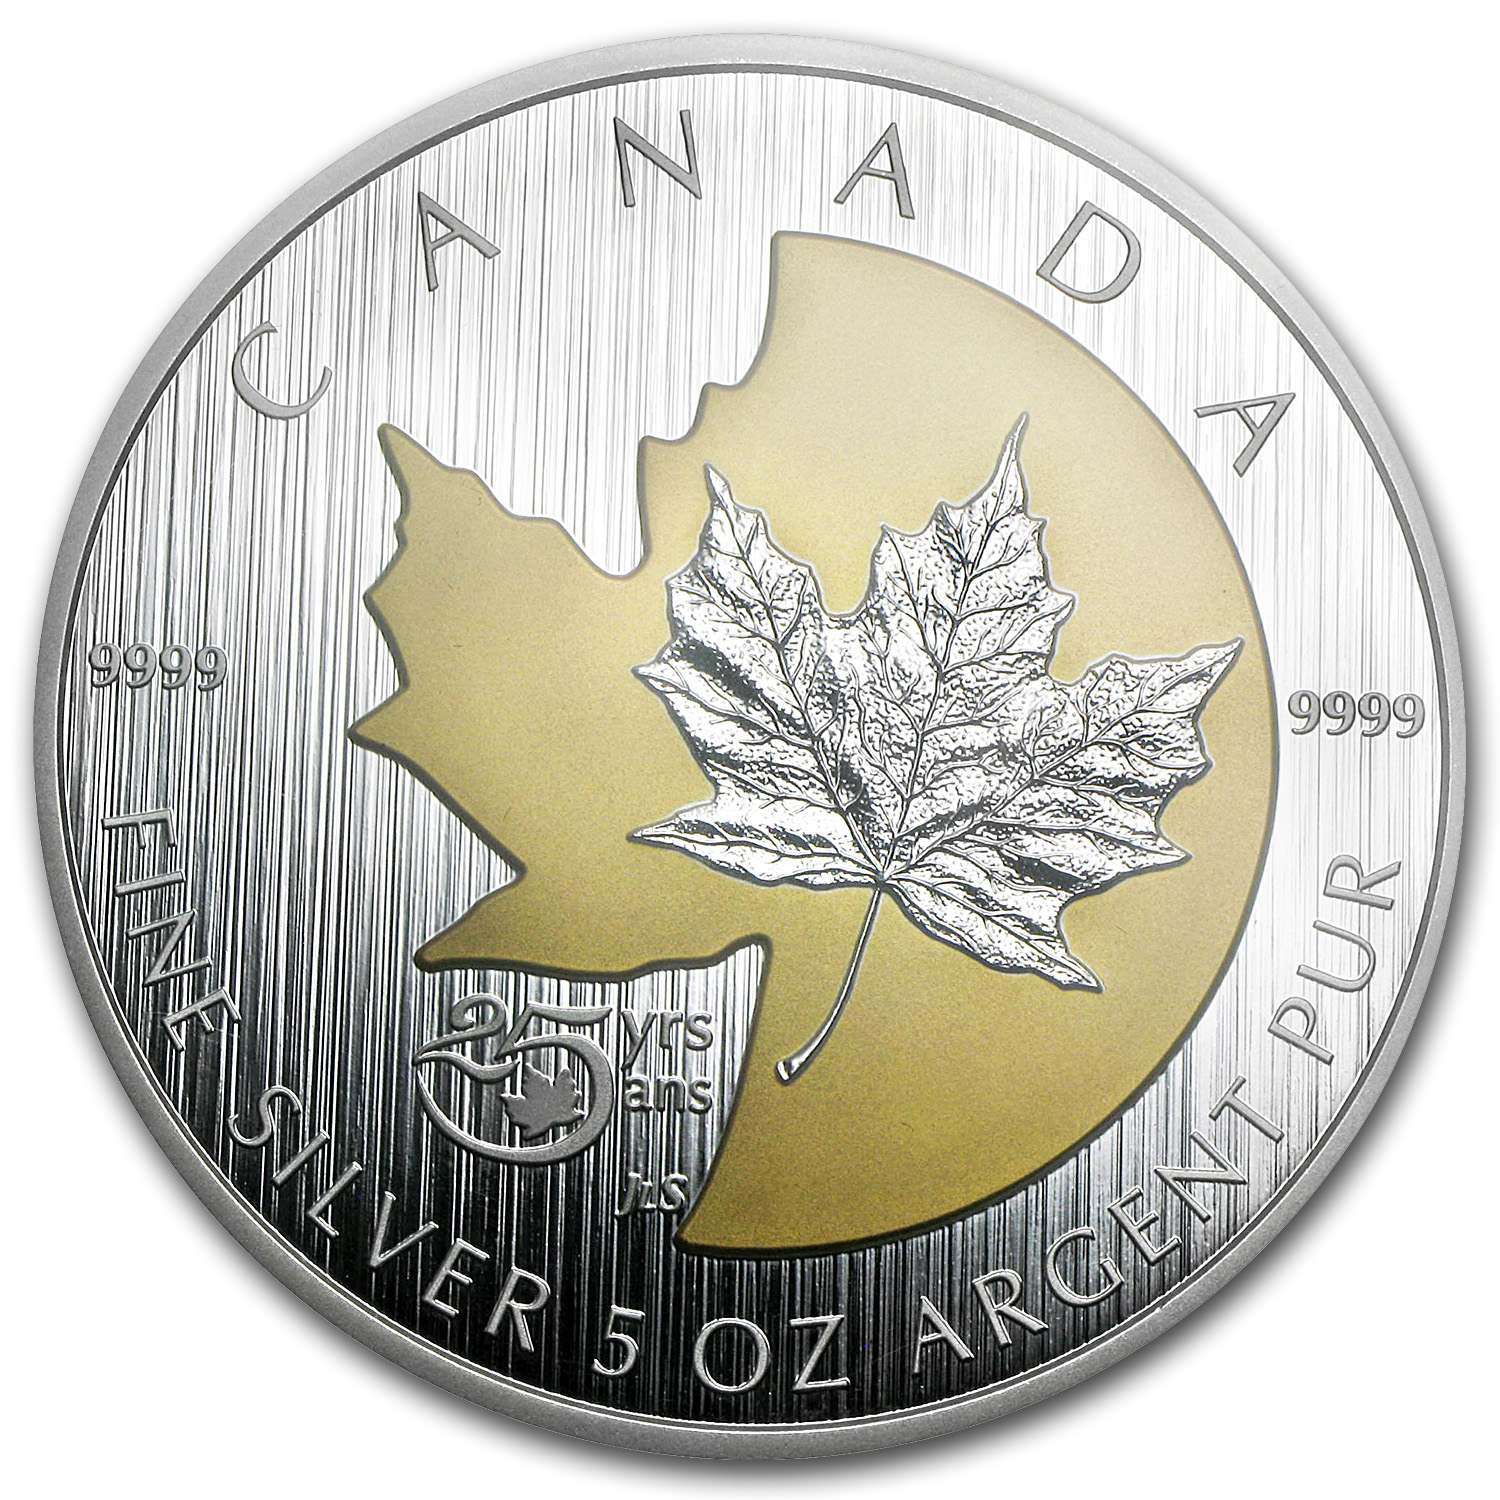 2013 Canada 5 oz Silver 25th Anniv of the Silver Maple (Gilded)